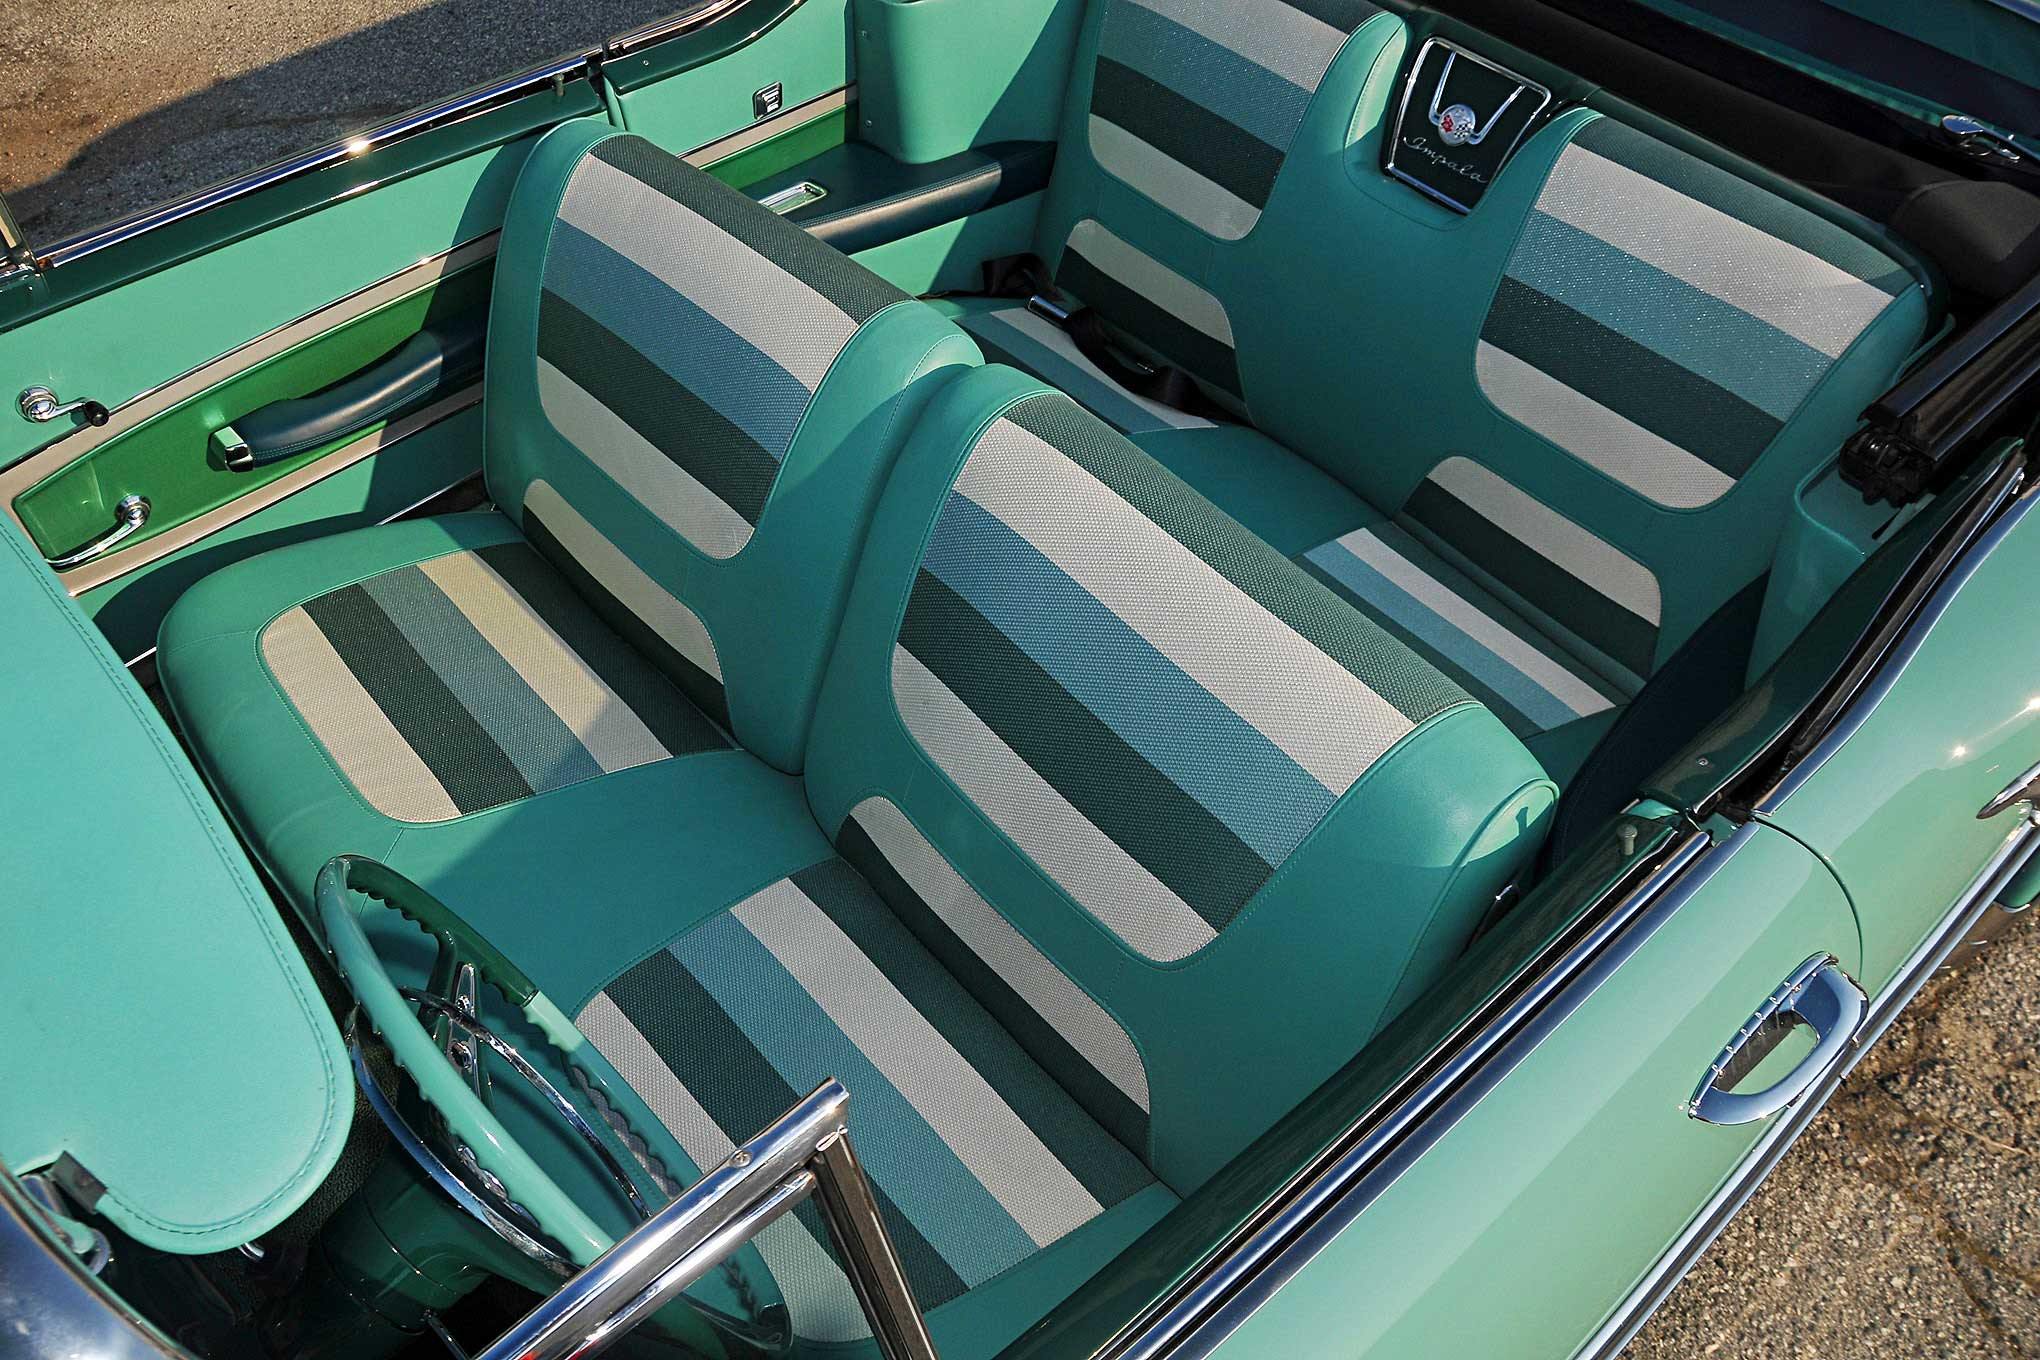 Chevrolet Impala Seats likewise Chevy Impalass Wht Lf additionally Impconvintb furthermore f in addition Rear Web. on 1958 chevrolet impala sport coupe